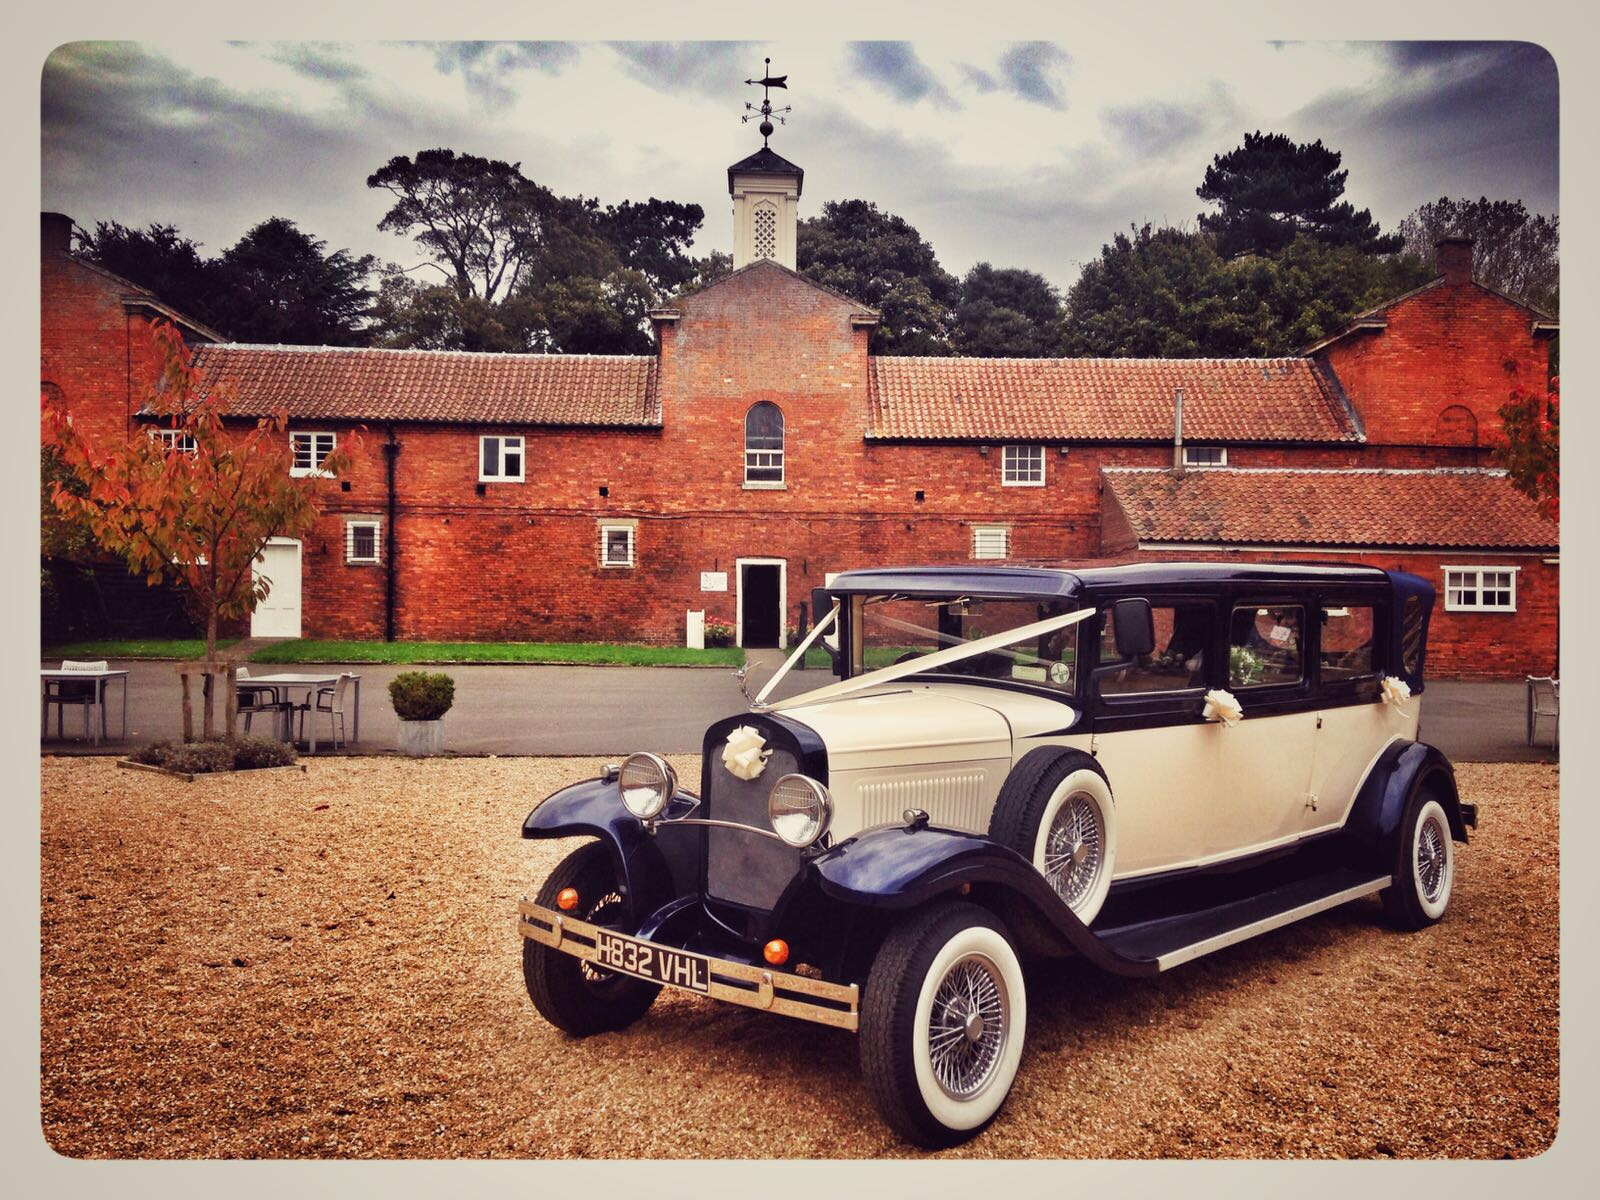 Select limos Harvey 1930 bramwith Wedding Car at Elsham Hall